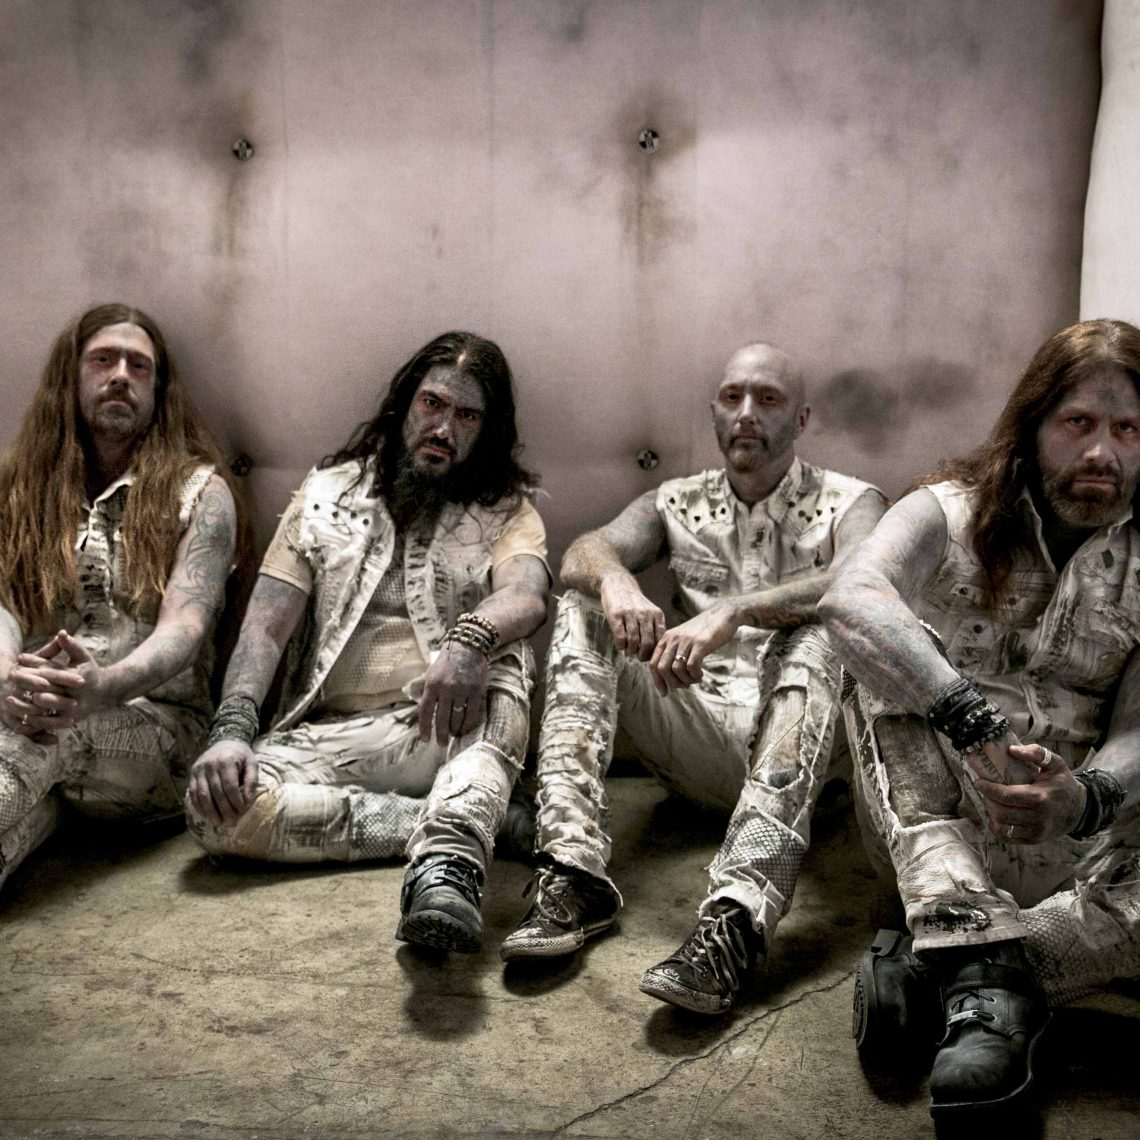 MACHINE HEAD reveal new song 'Beyond The Pale', album release date & pre-order